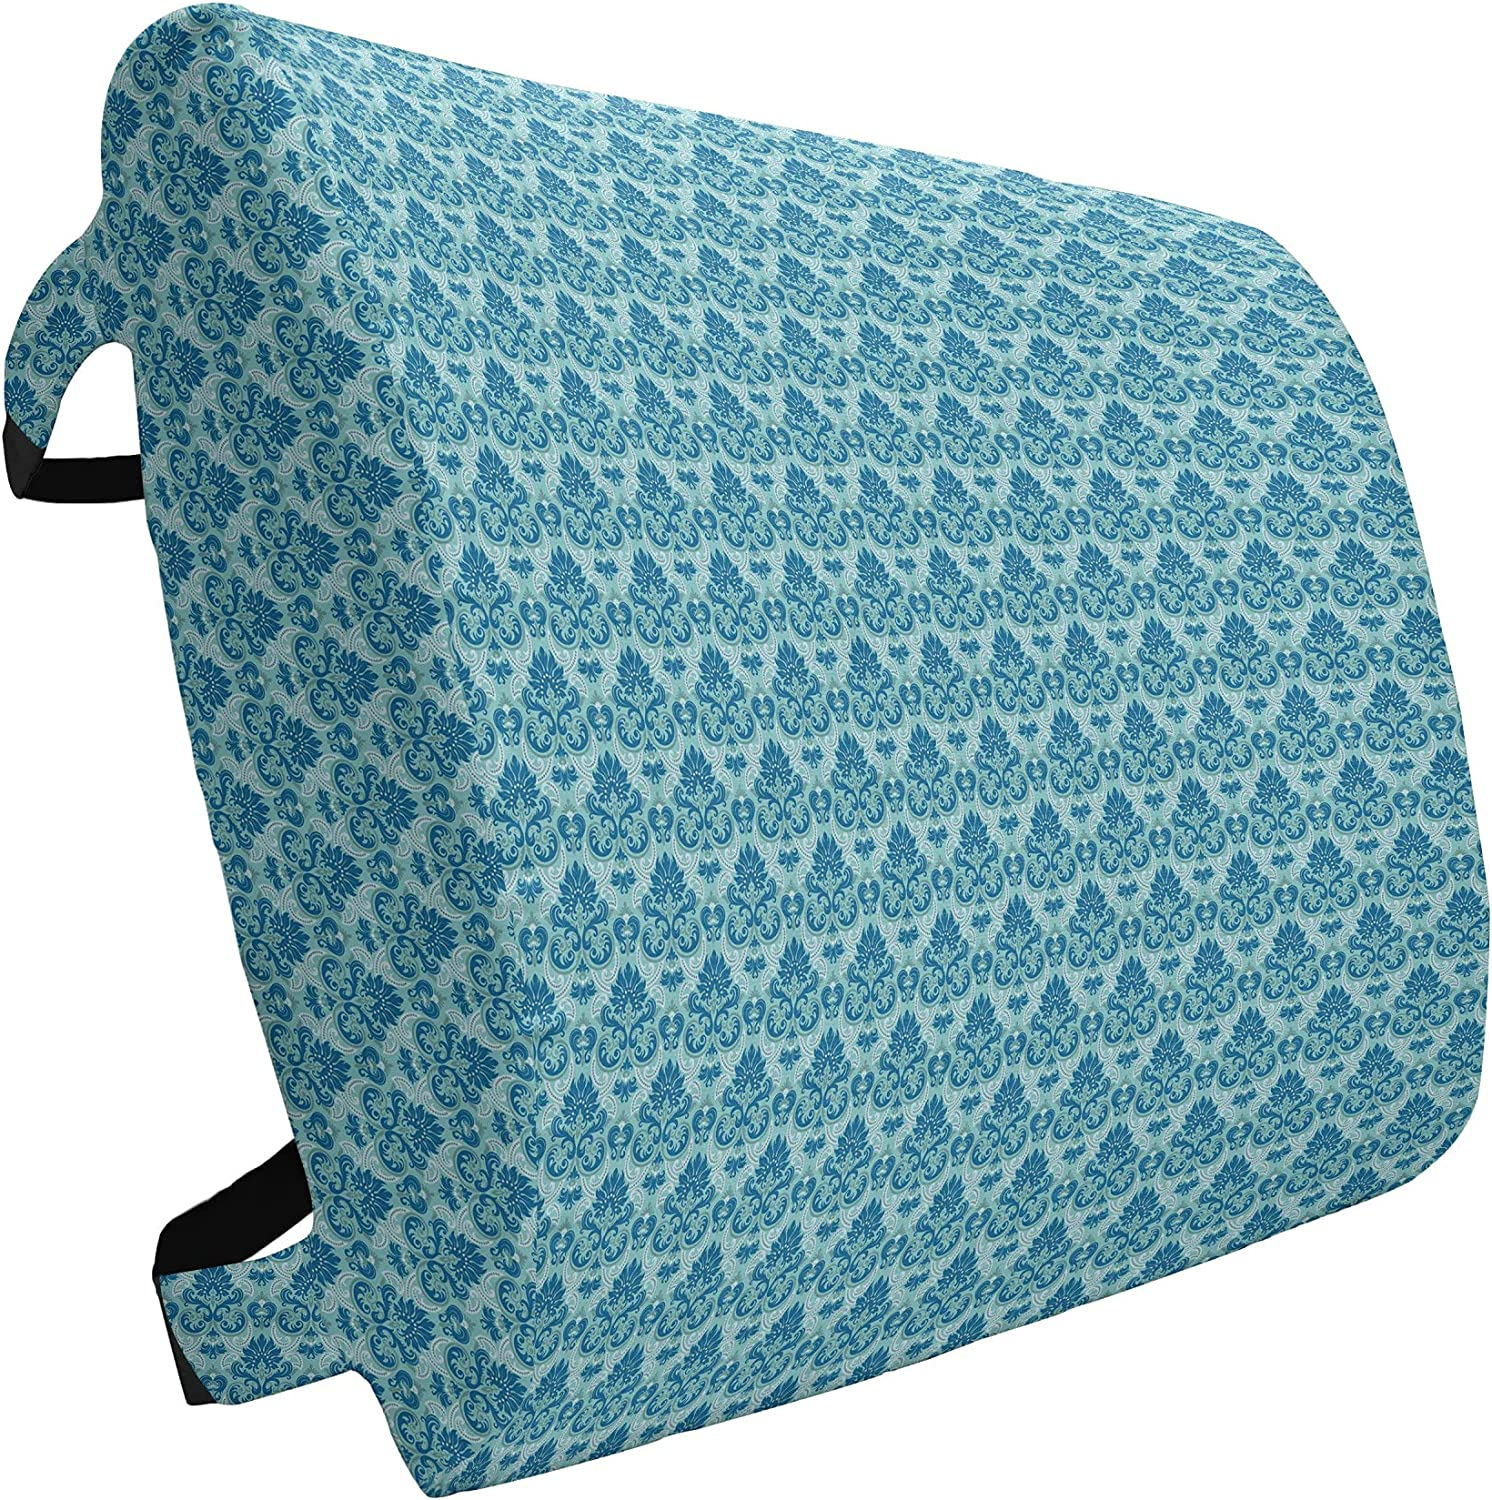 Ambesonne Damask Lumbar 67% OFF of fixed price Pillow Blue Colored famous Pattern Wester with